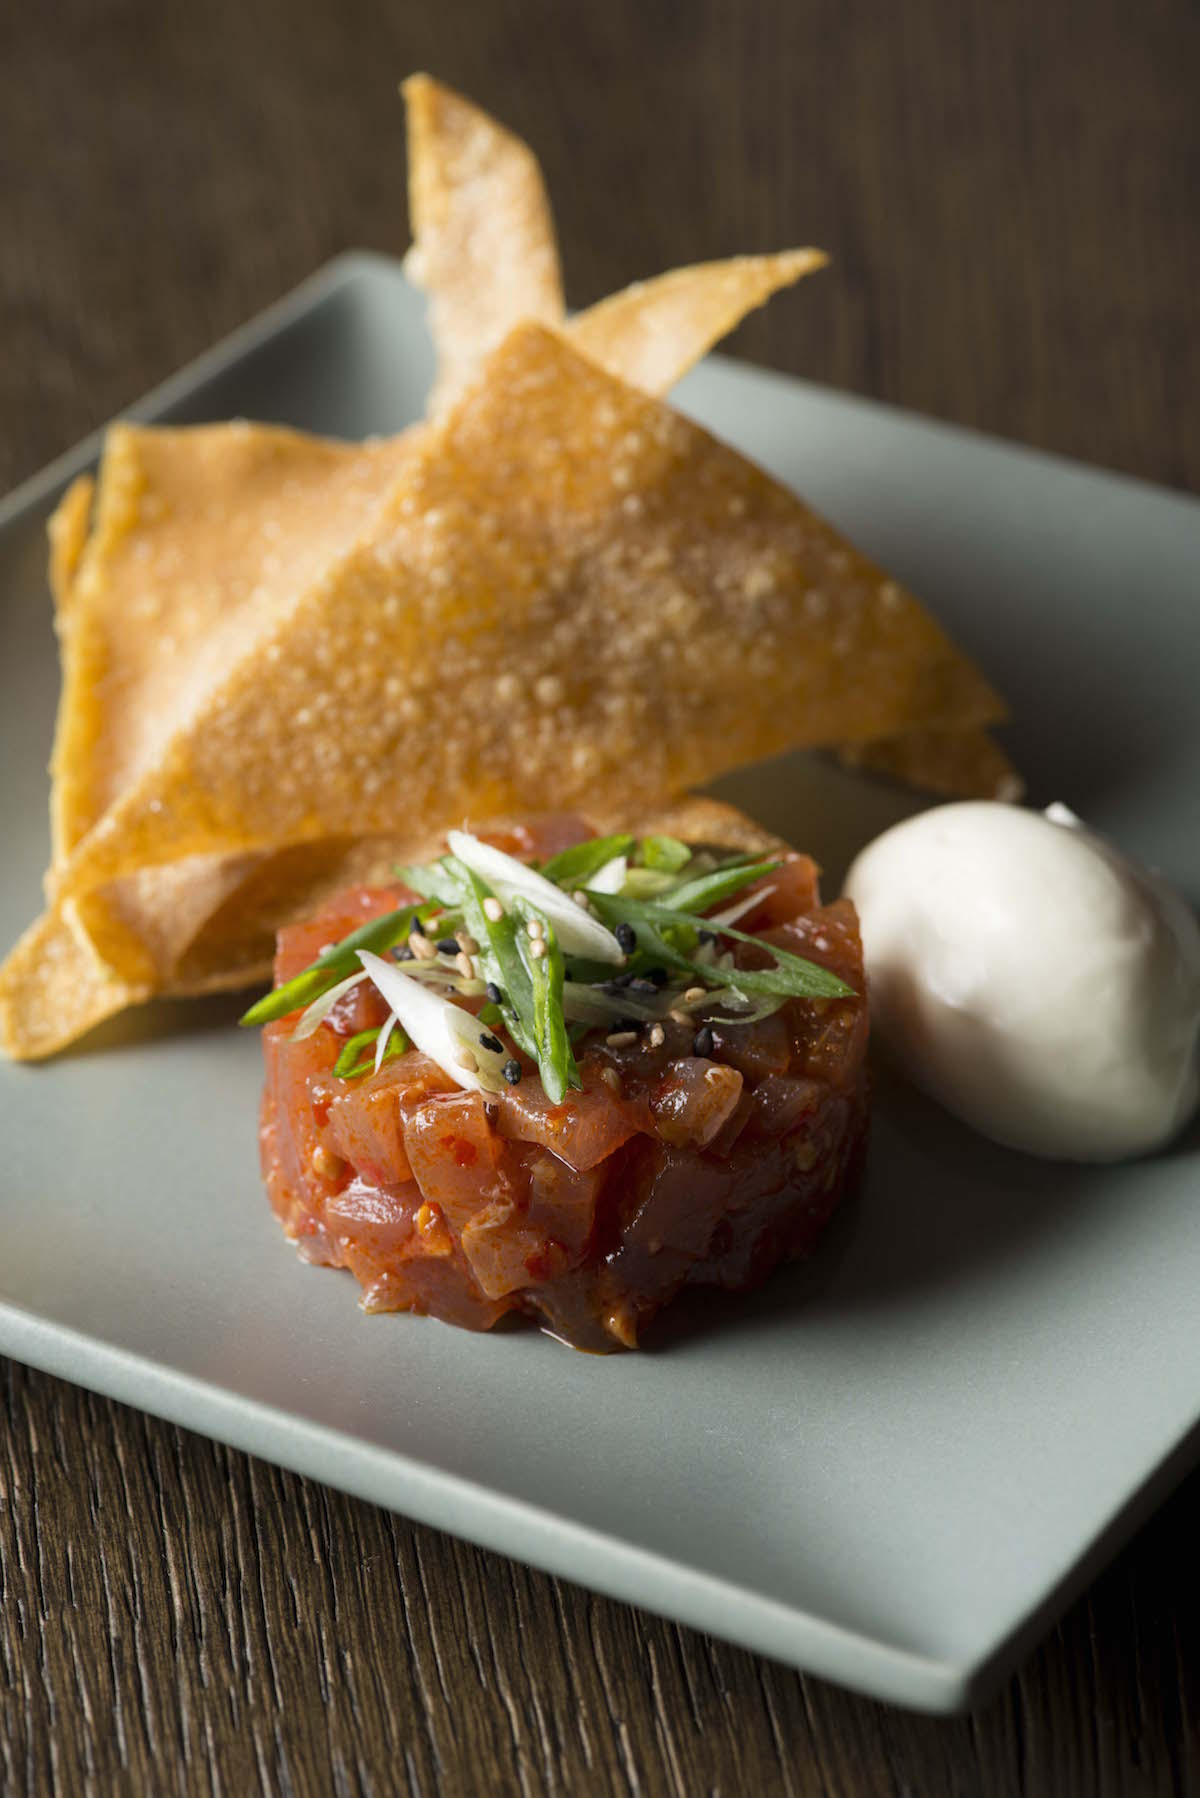 Spicy tuna tartare, chilli, garlic, sesame oil, wonton crisps